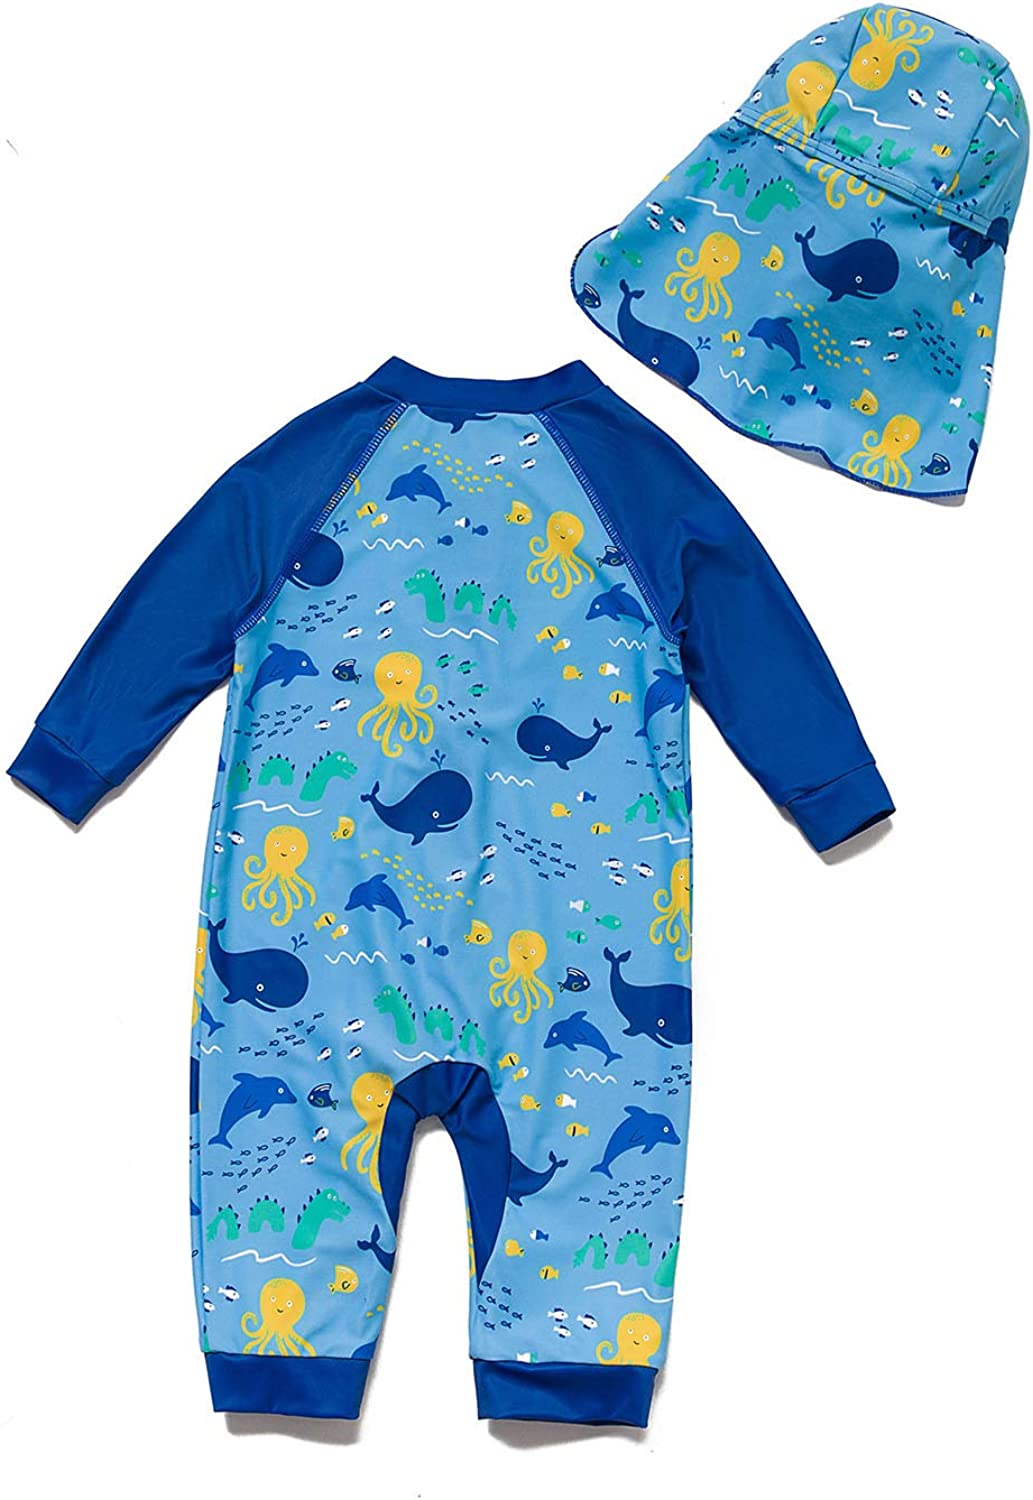 BONVERANO Baby/&Toddler Boys Sunsuit UPF 50 Sun Protection One Piece Swimsuit with Full-Length Zipper